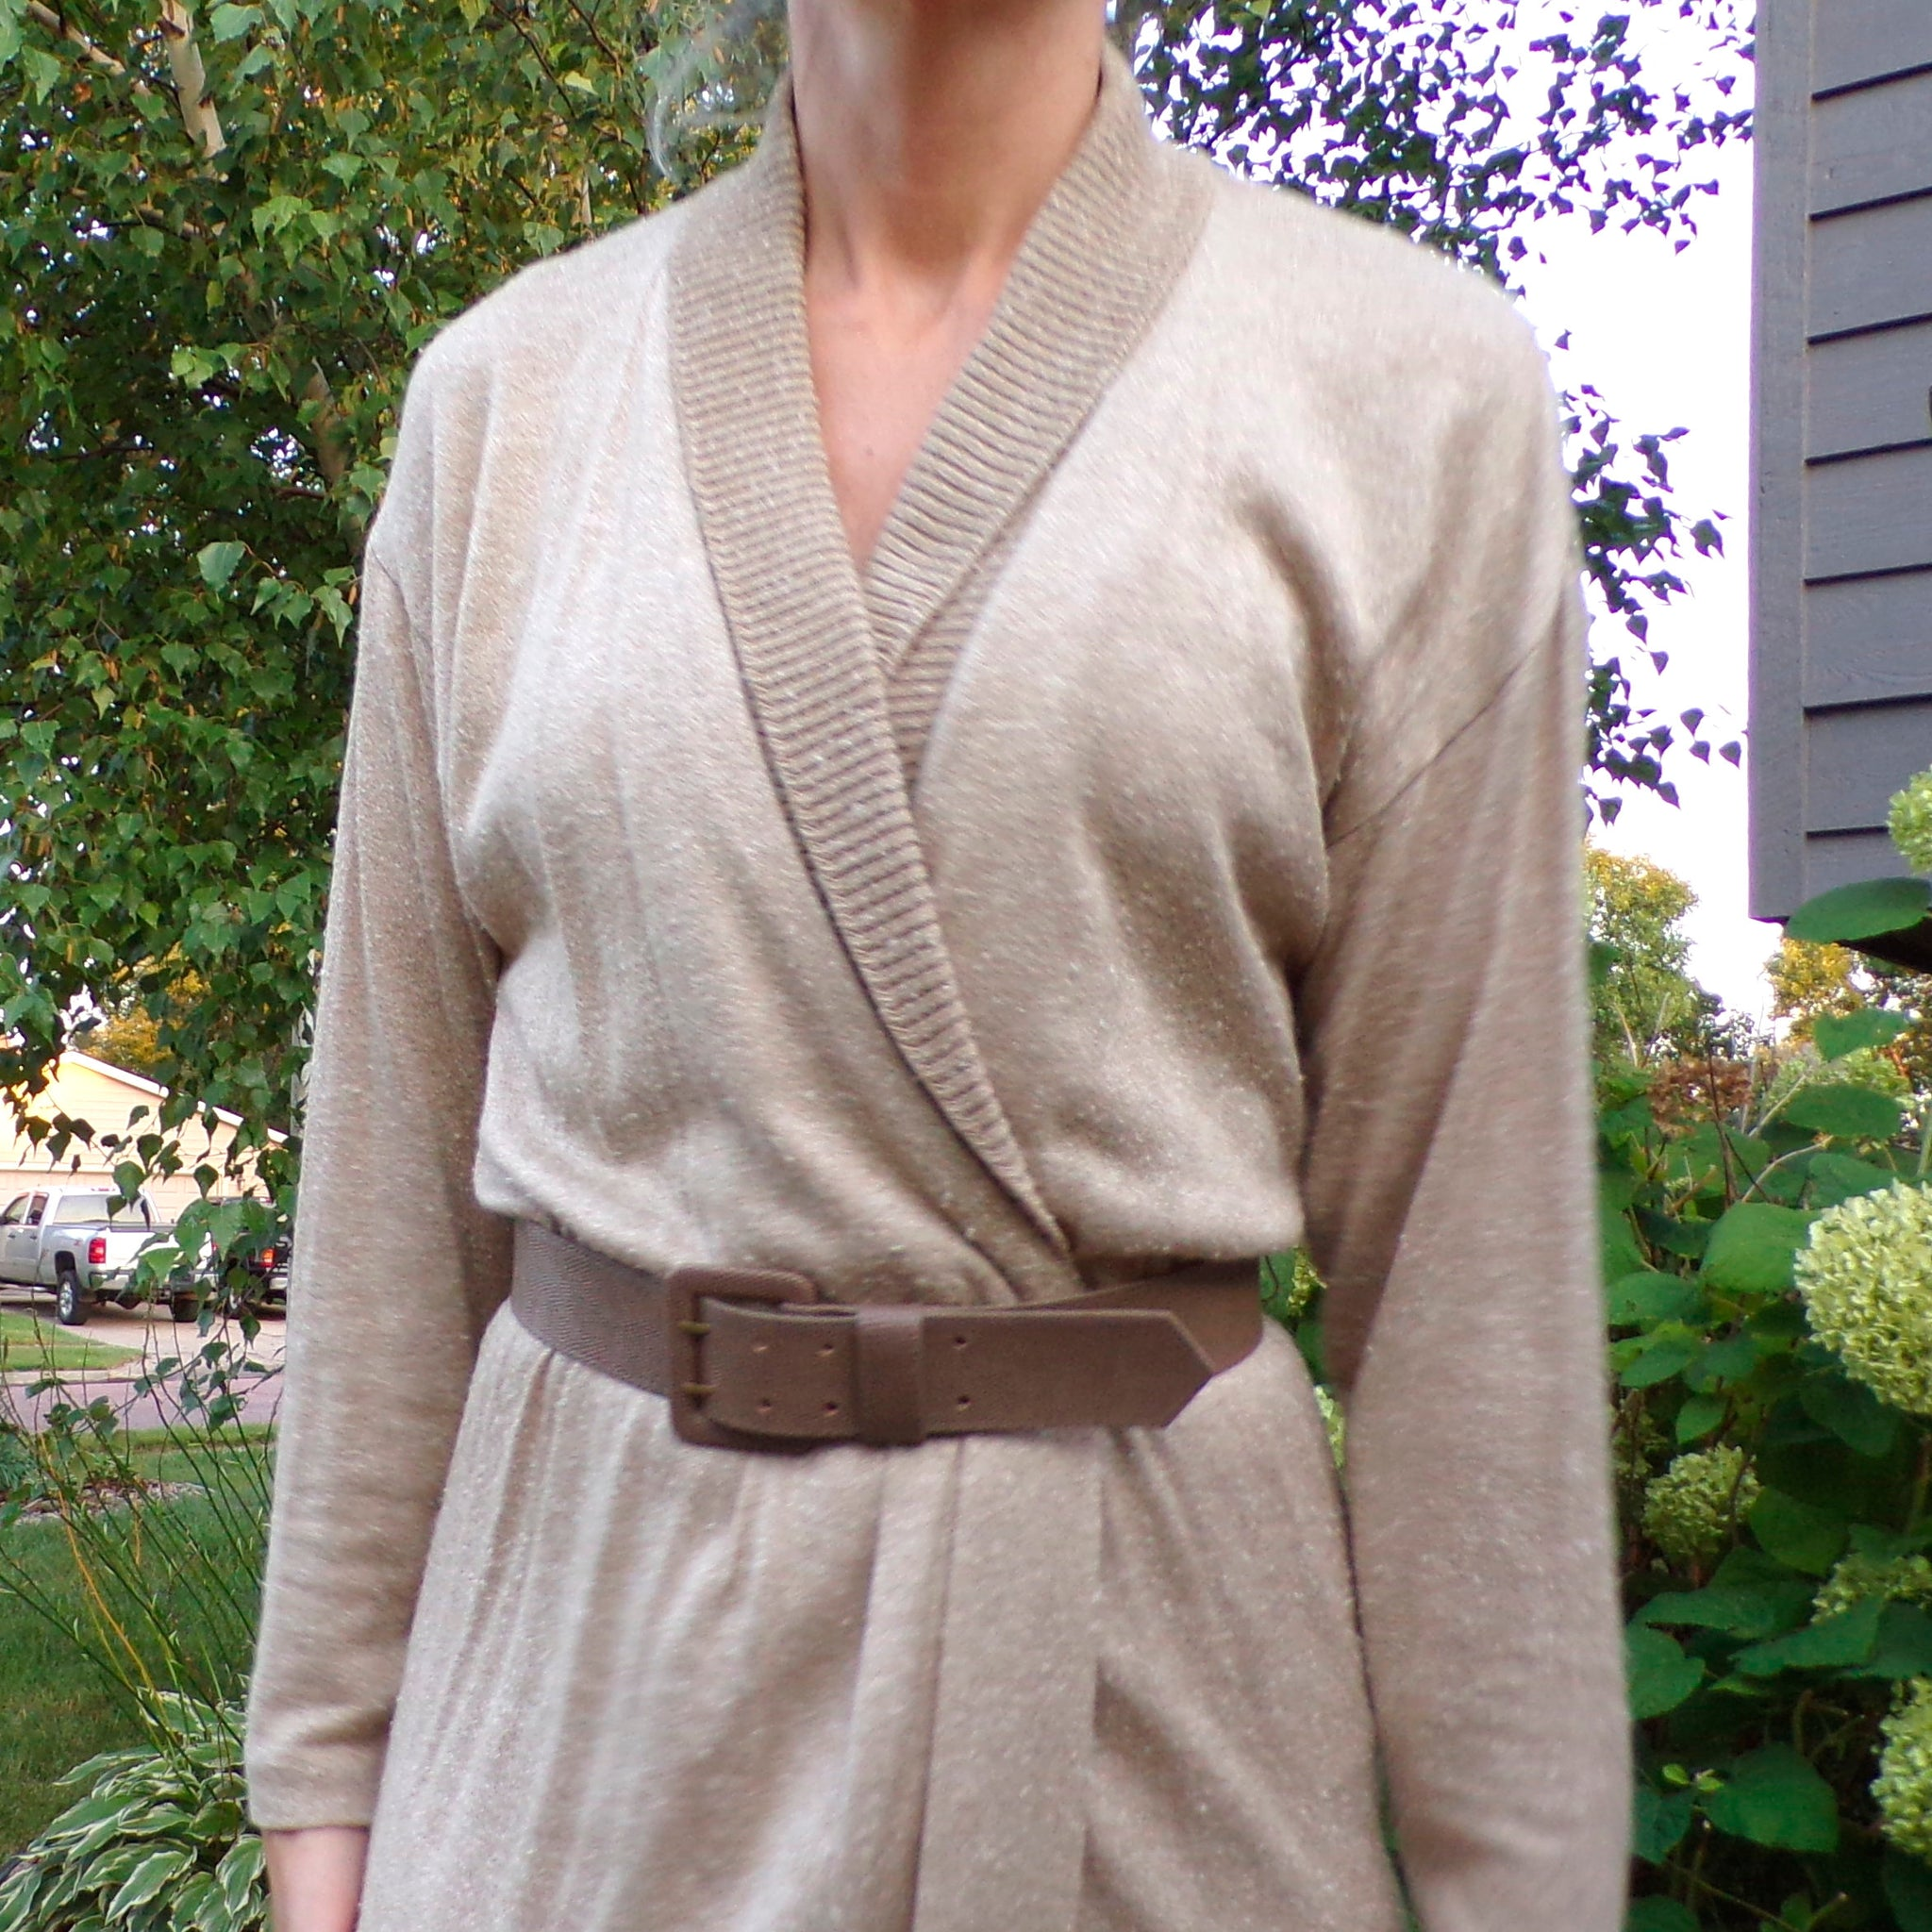 LIZ CLAIBORNE 1980's 1990's nubbly knit dress with belt S M (E10)